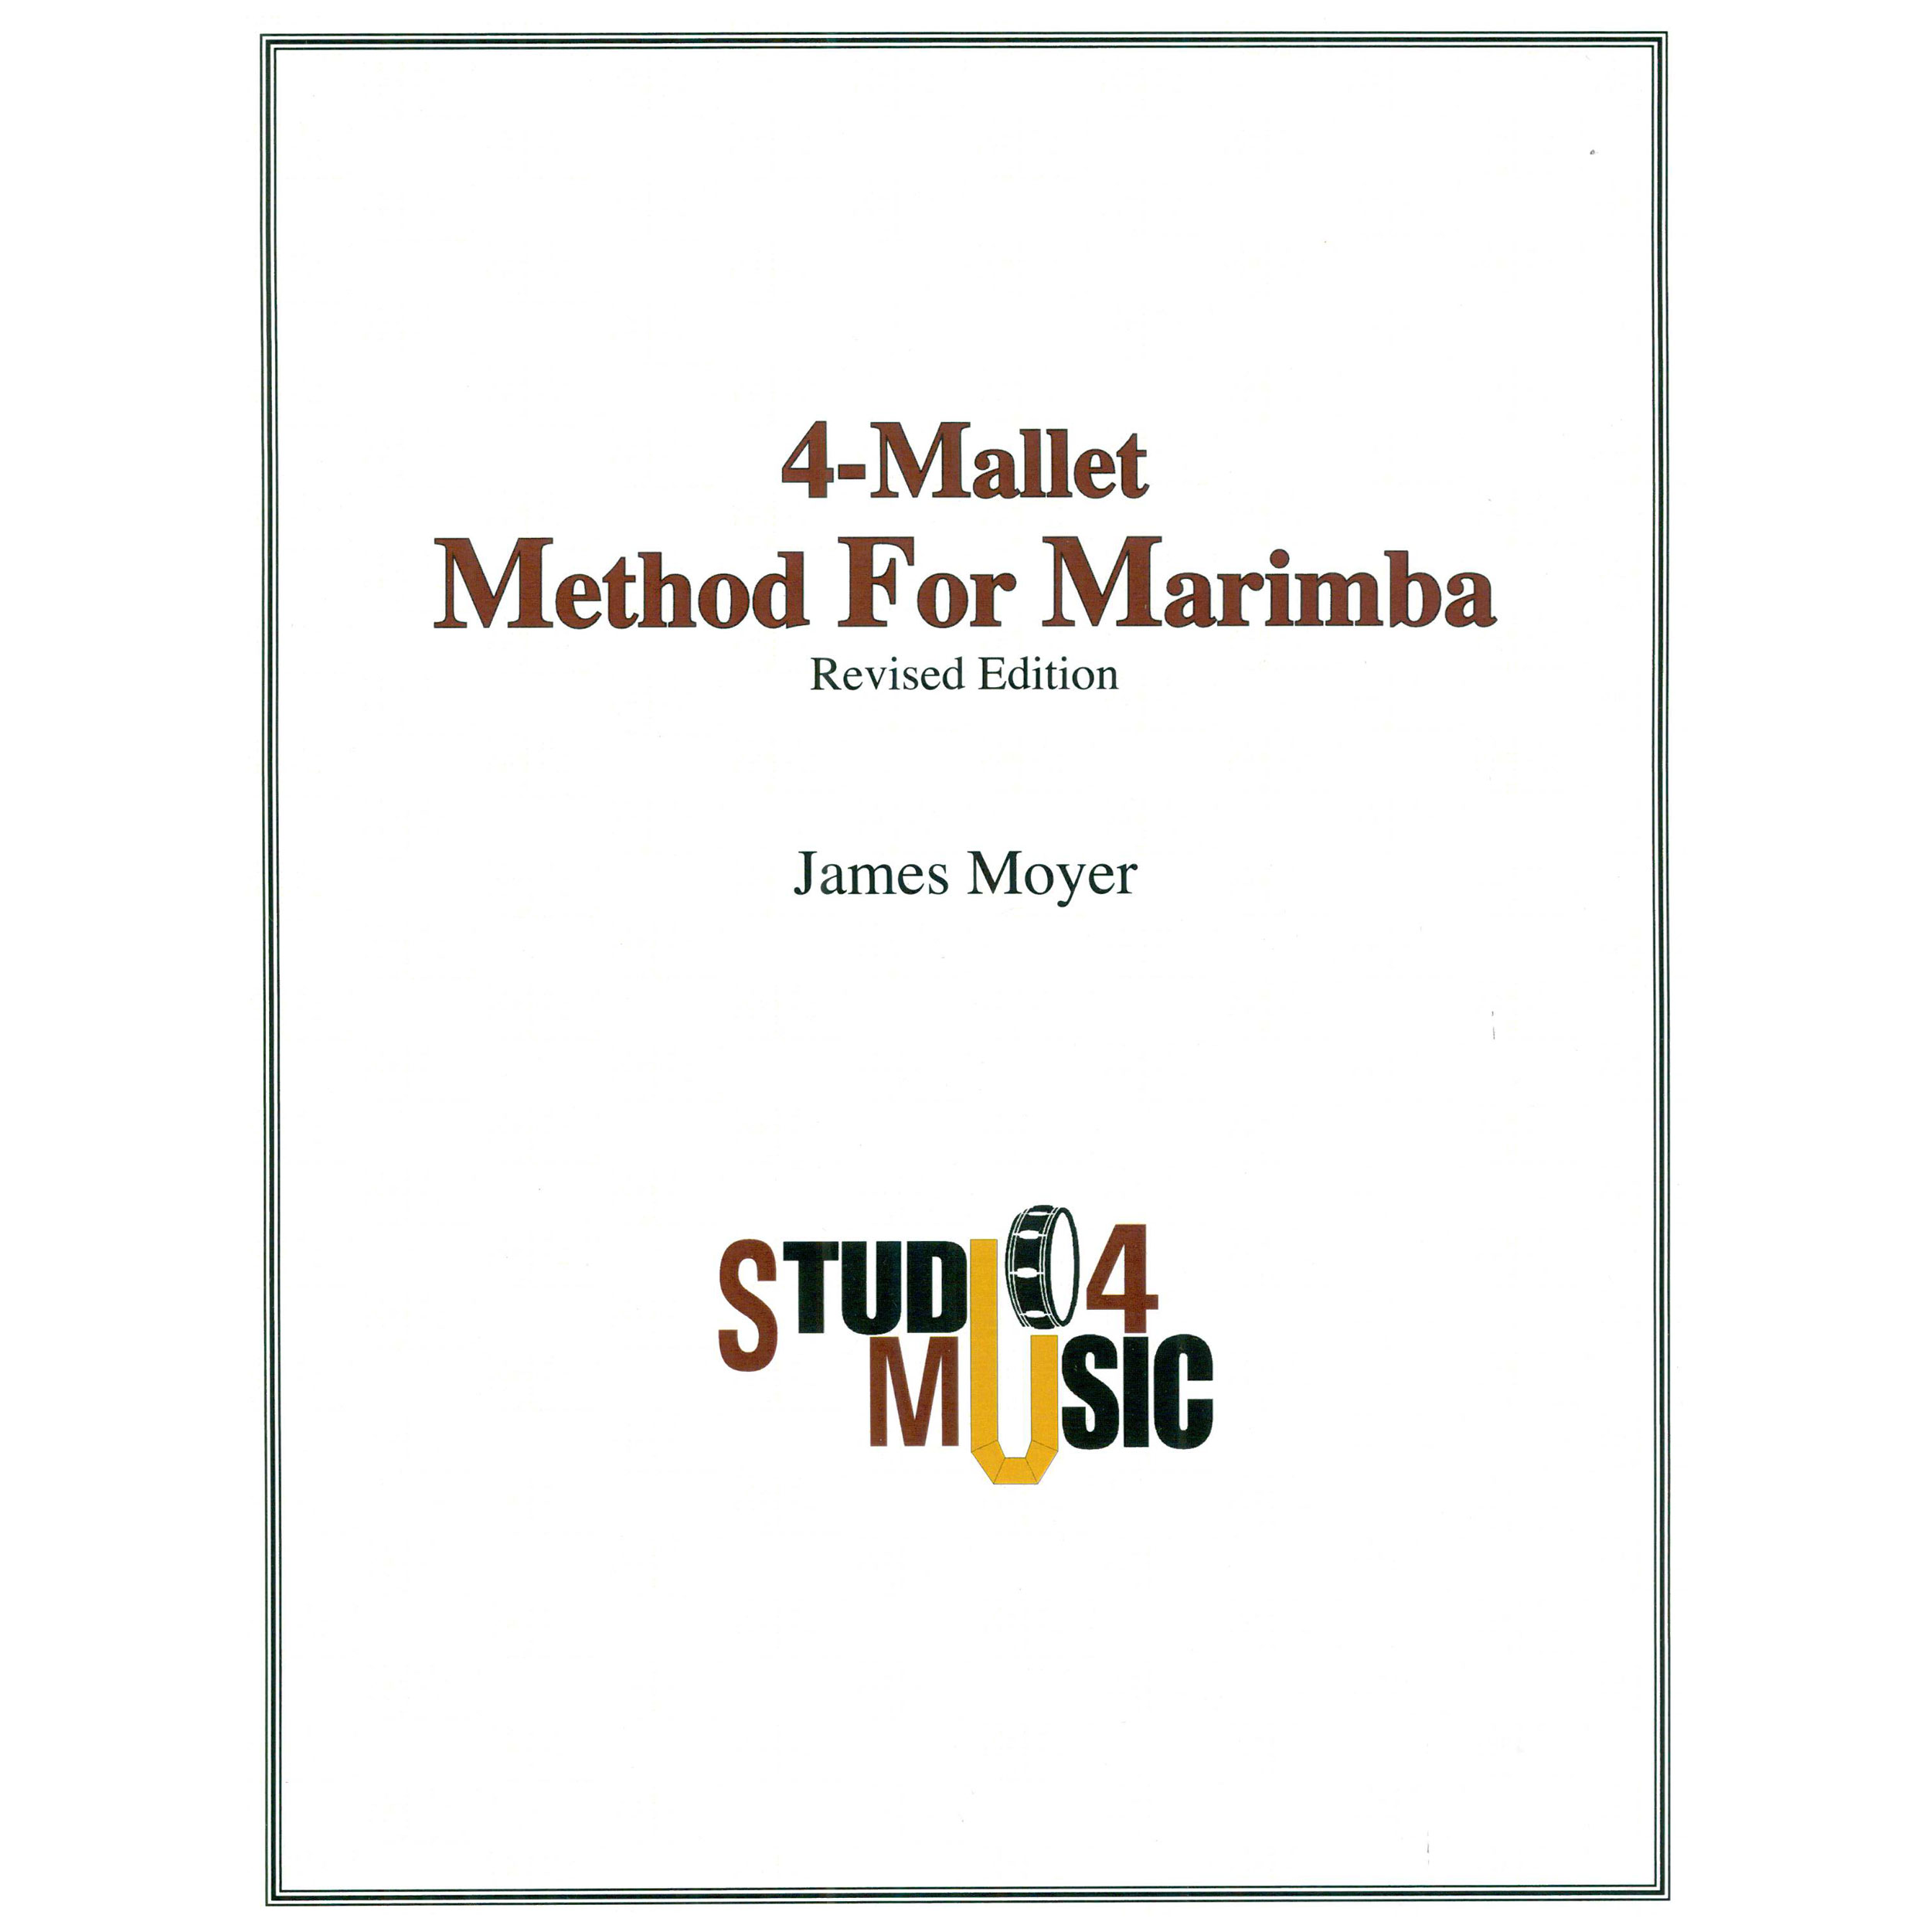 4-Mallet Method for Marimba by James Moyer